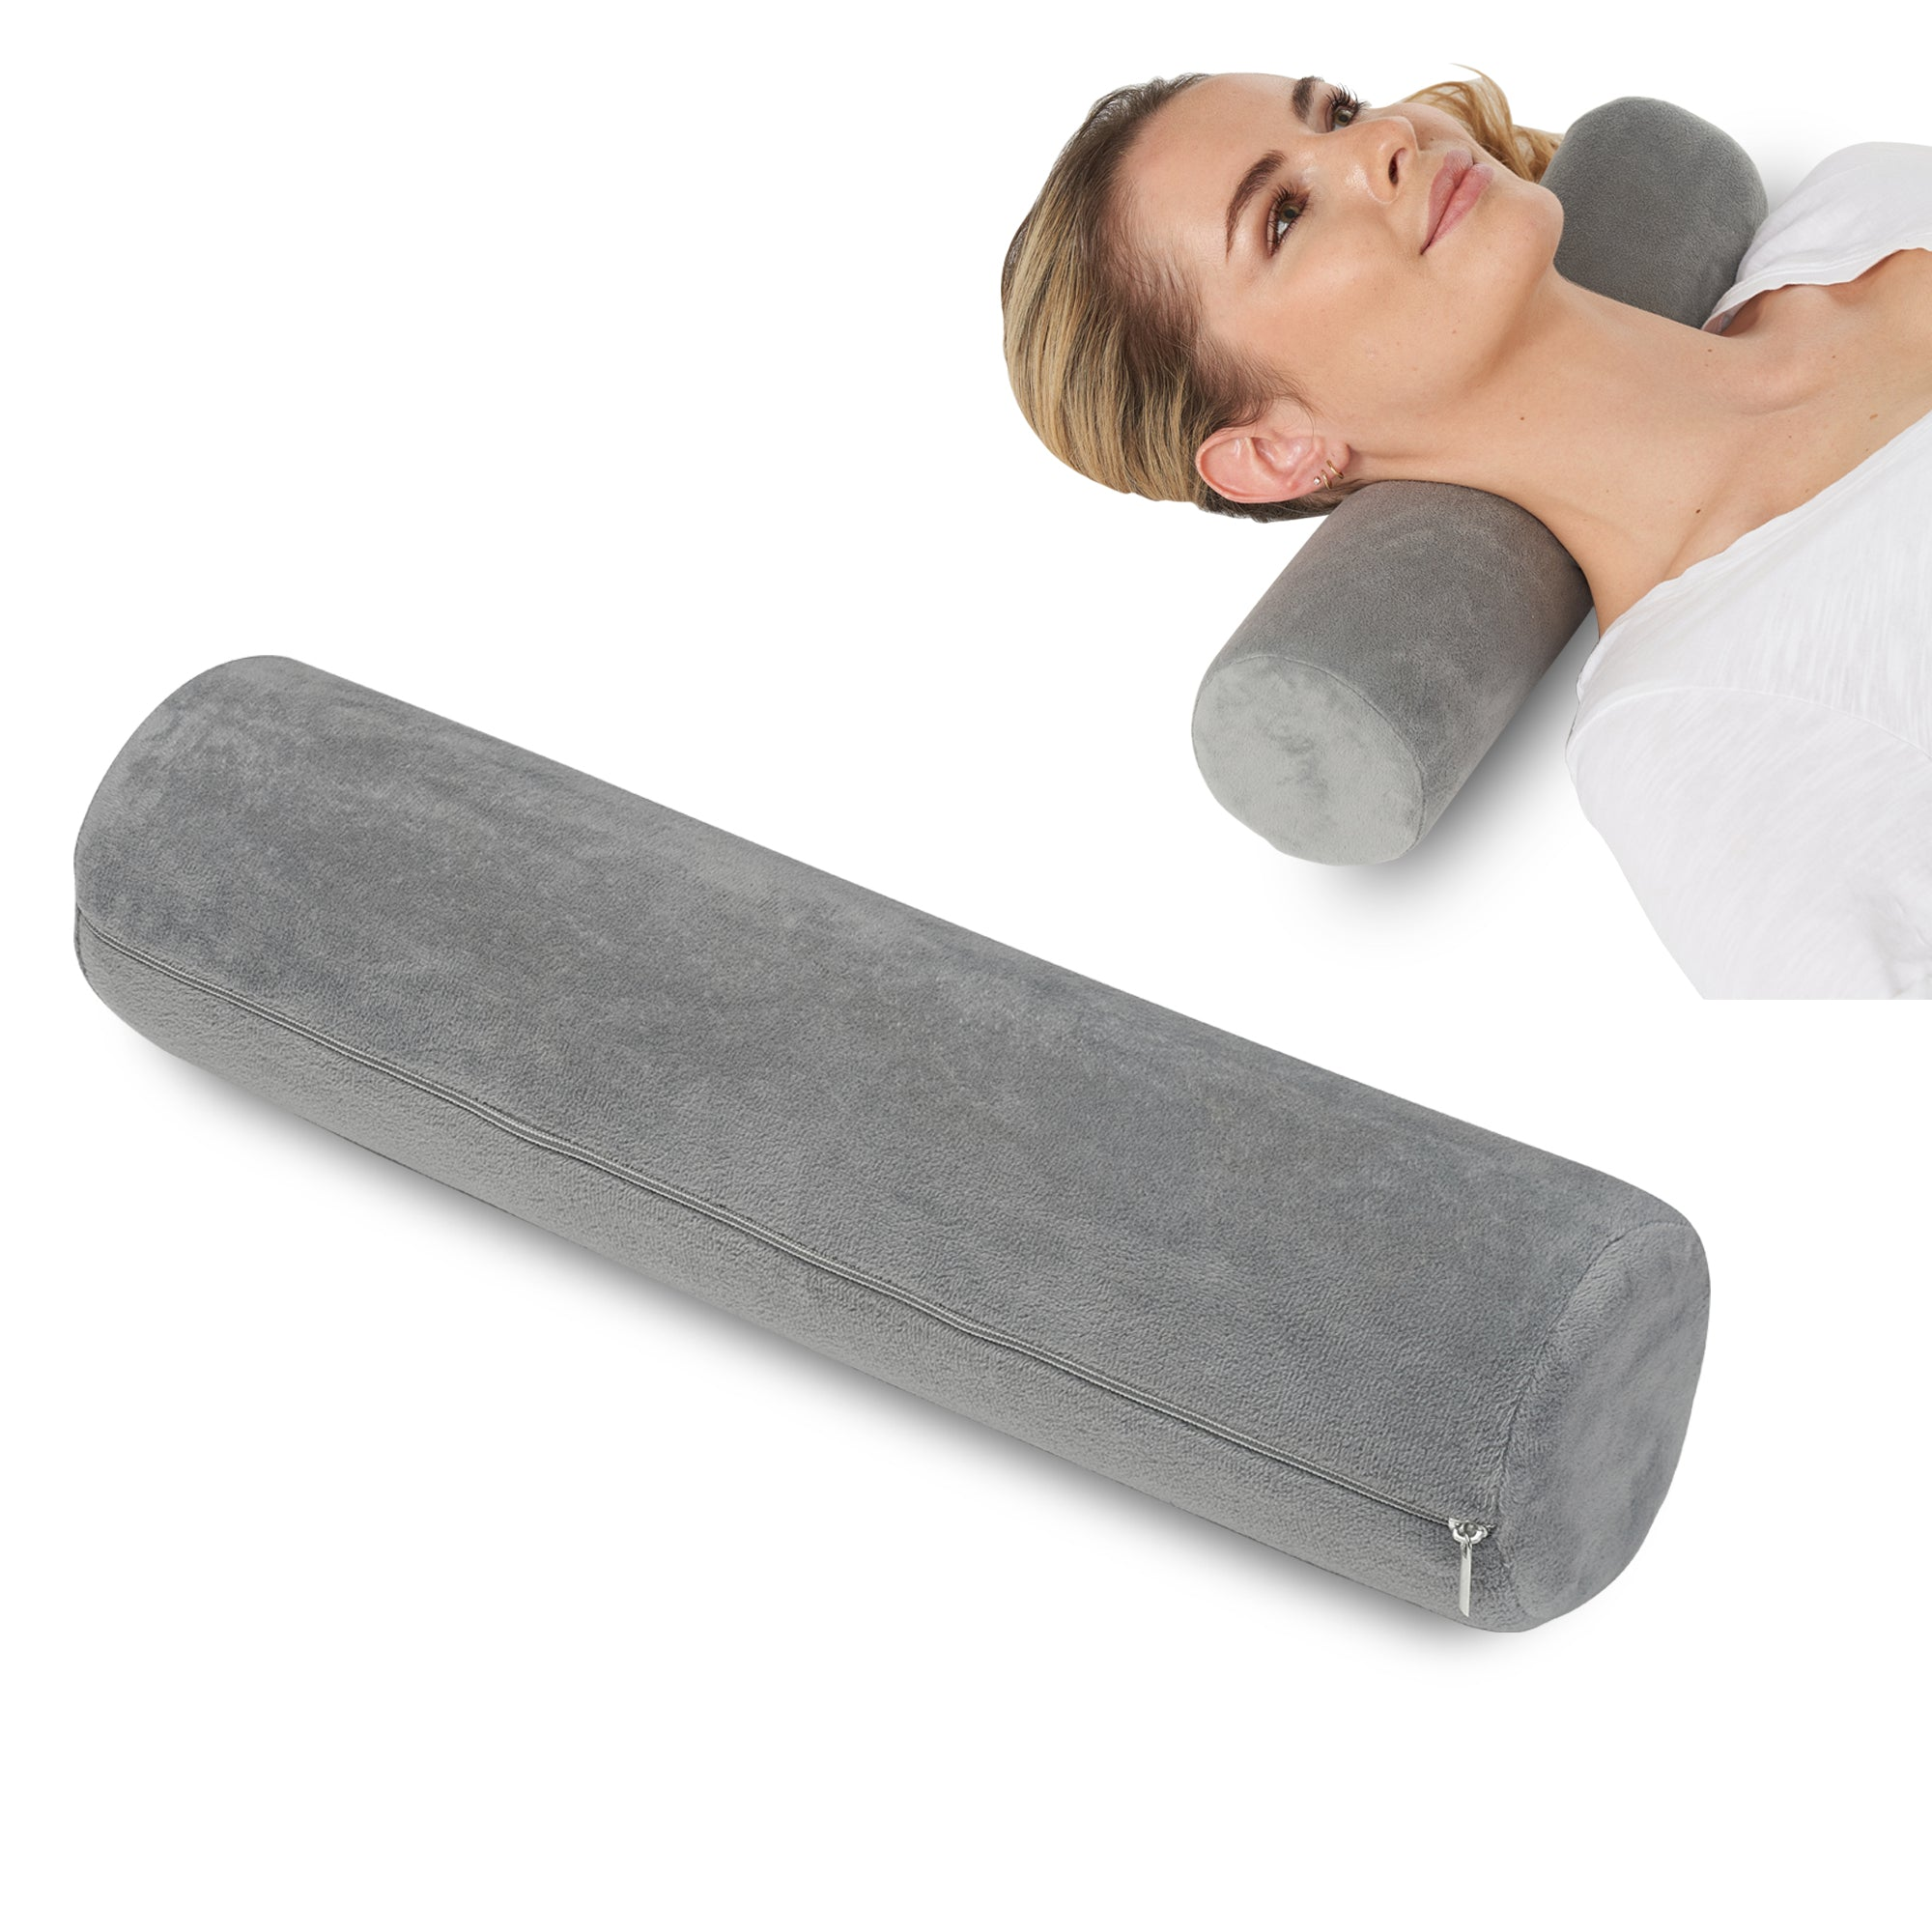 AllSett Health Cervical Neck Roll Memory Foam Pillow, Bolster Pillow, Round Neck Pillows Support for Sleeping | Bolster Pillow for Bed, Legs, Back and Yoga, Grey